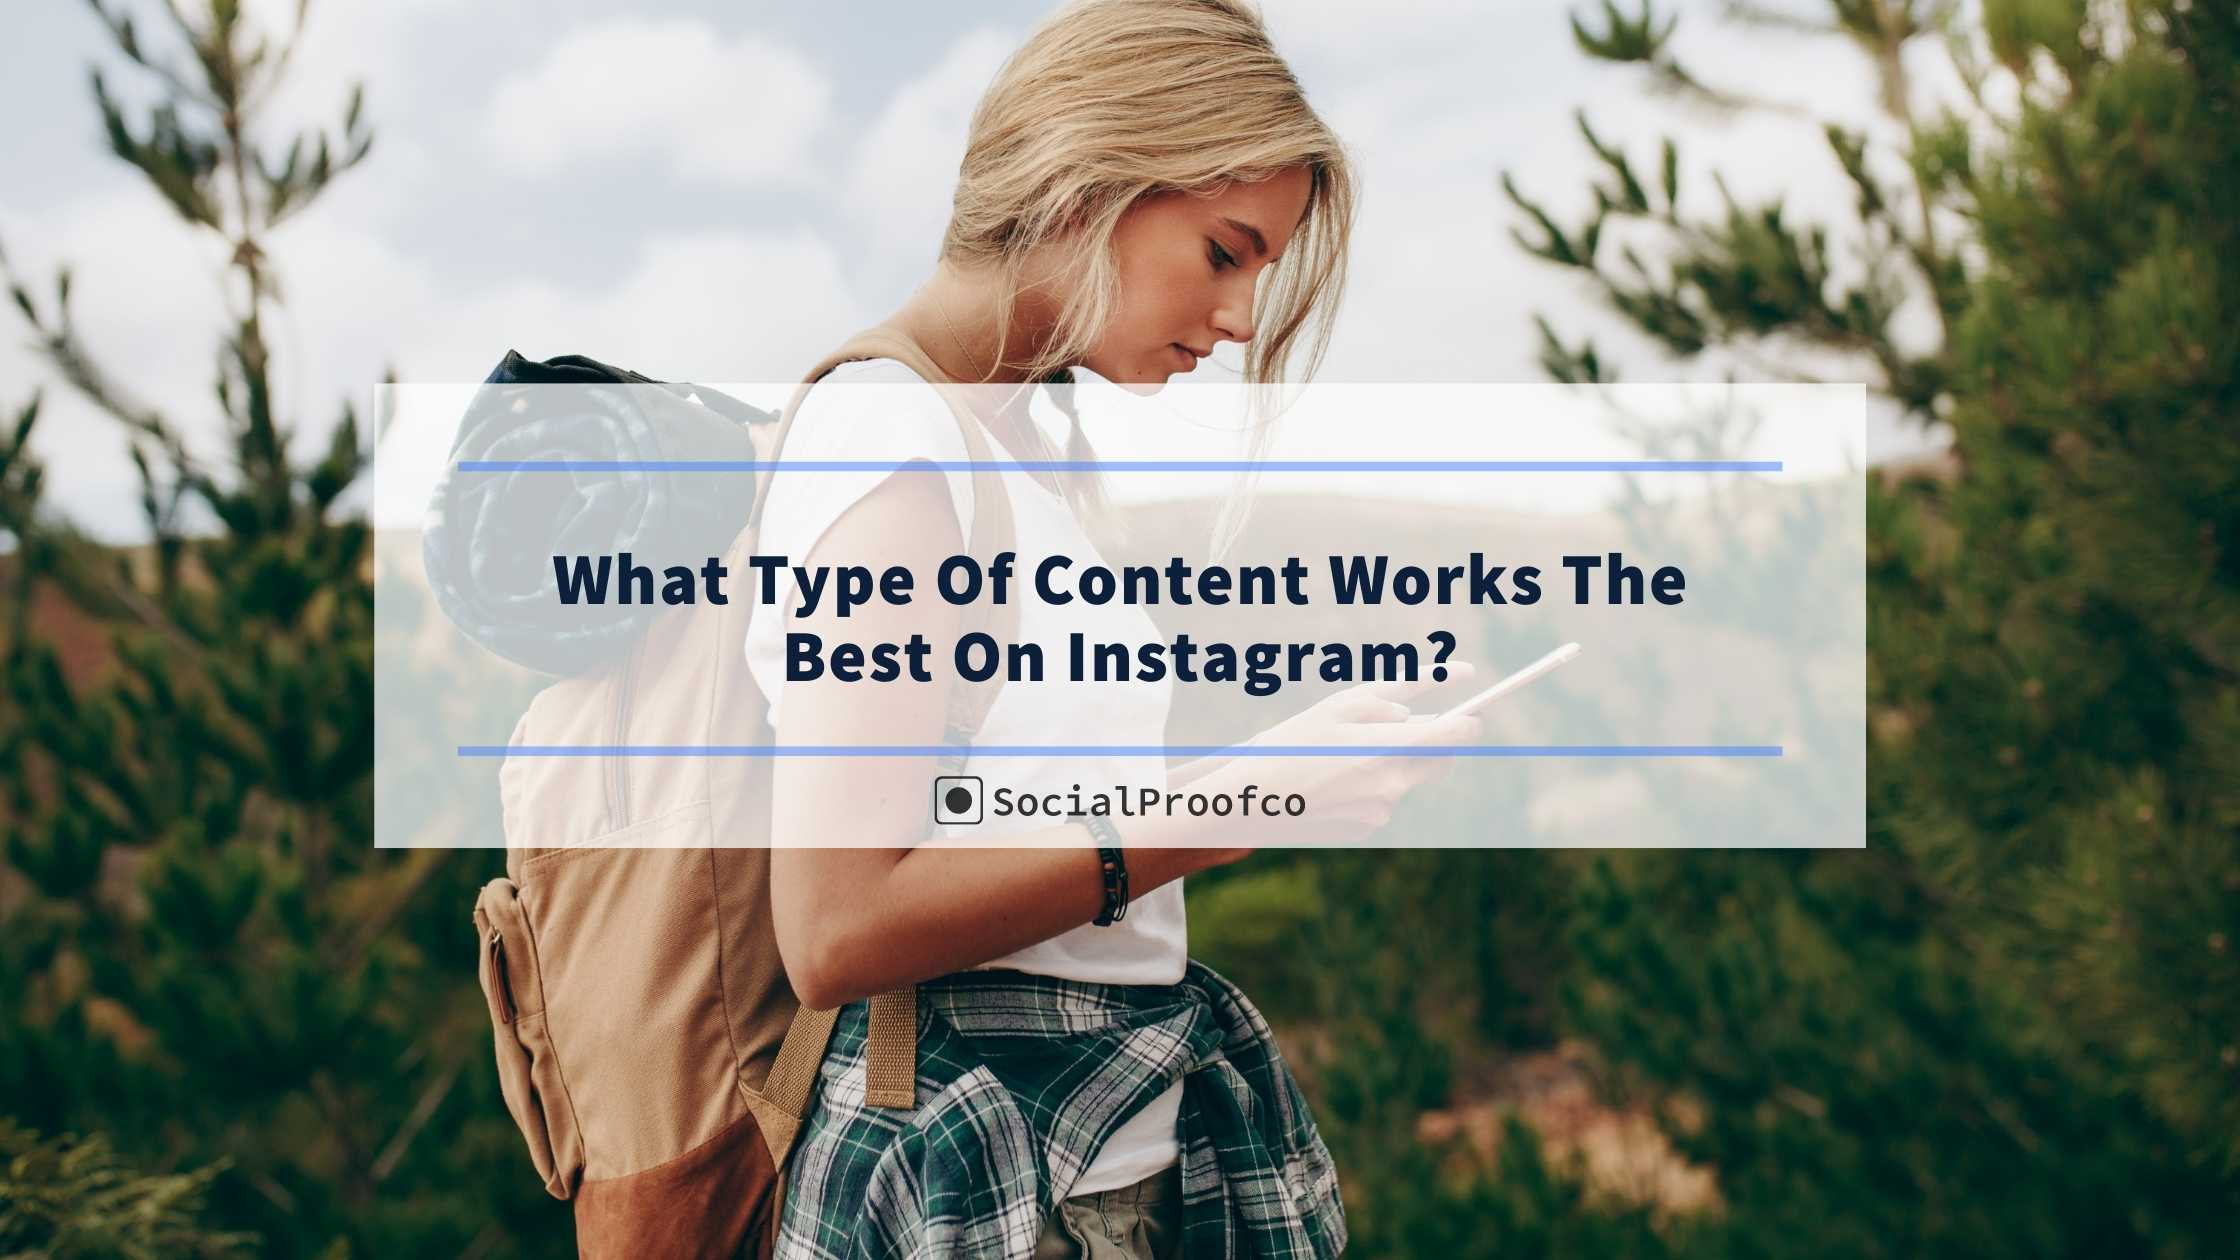 What Type Of Content Works The Best On Instagram?